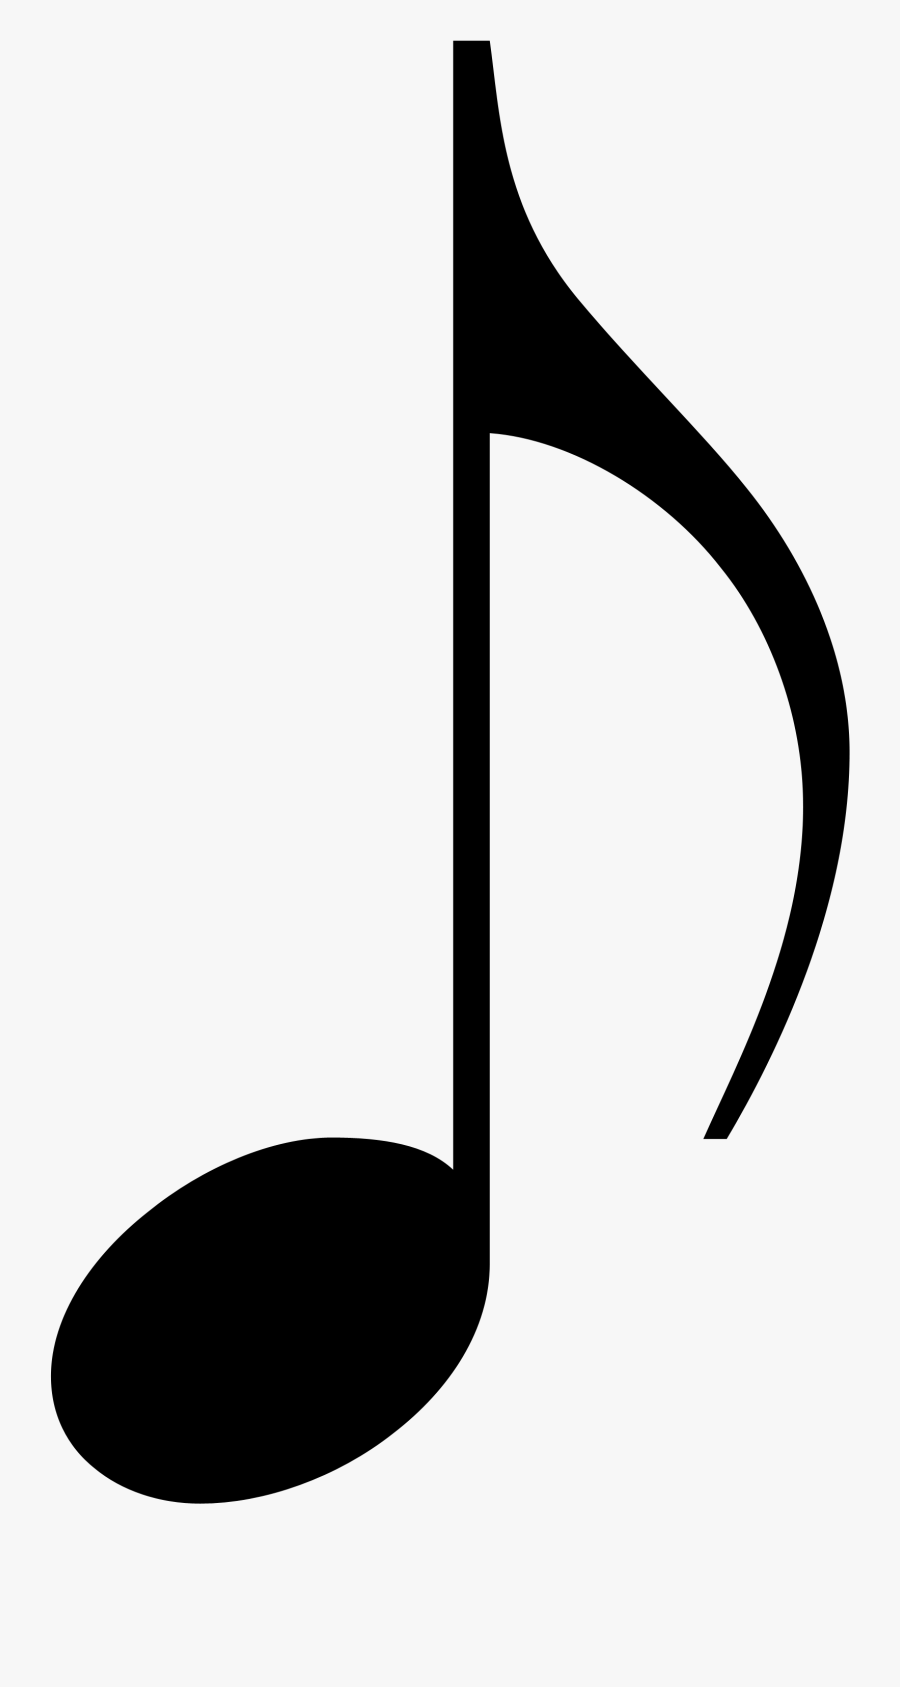 Hd Png Images Music Notes.